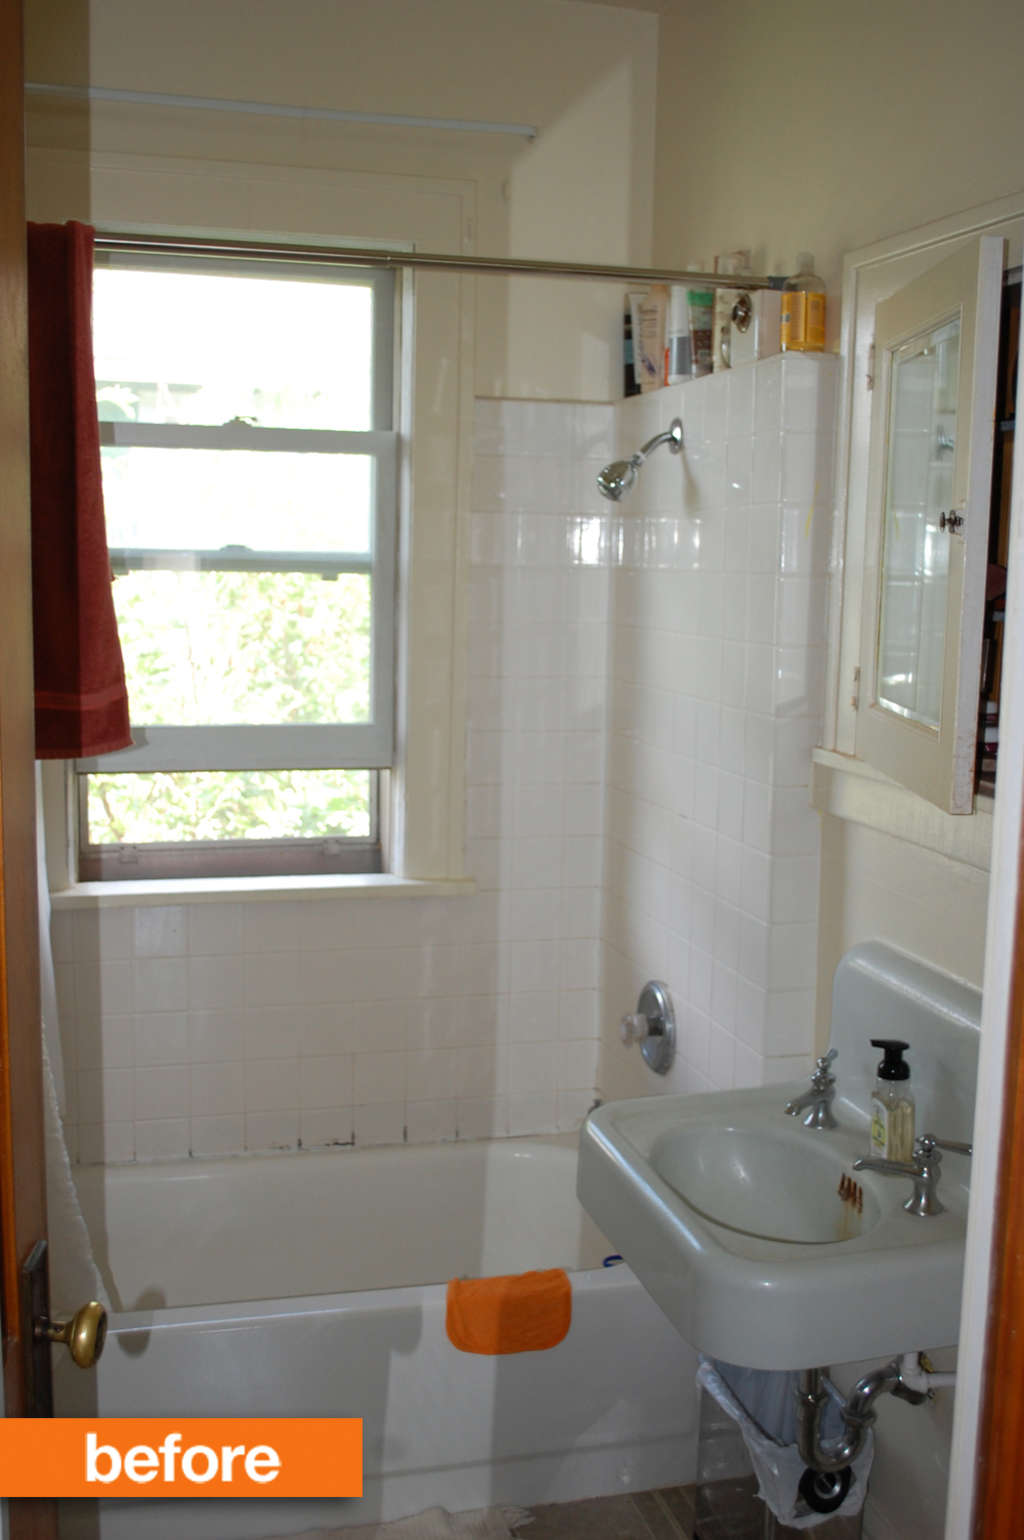 Before & After: A Stylish Bathroom Transformation